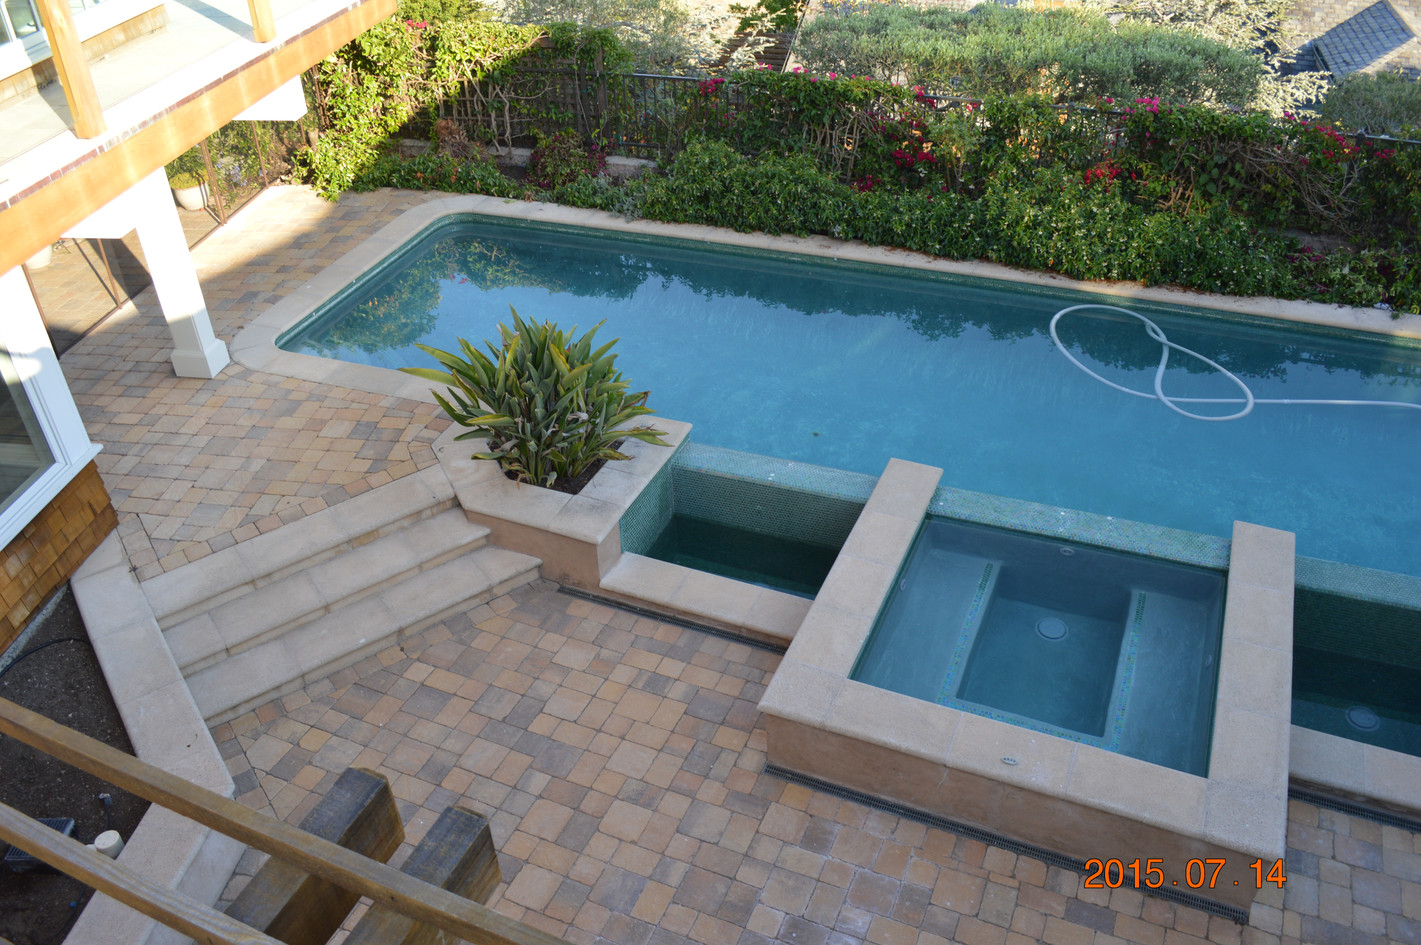 Outdoor two-level pool with jacuzzi